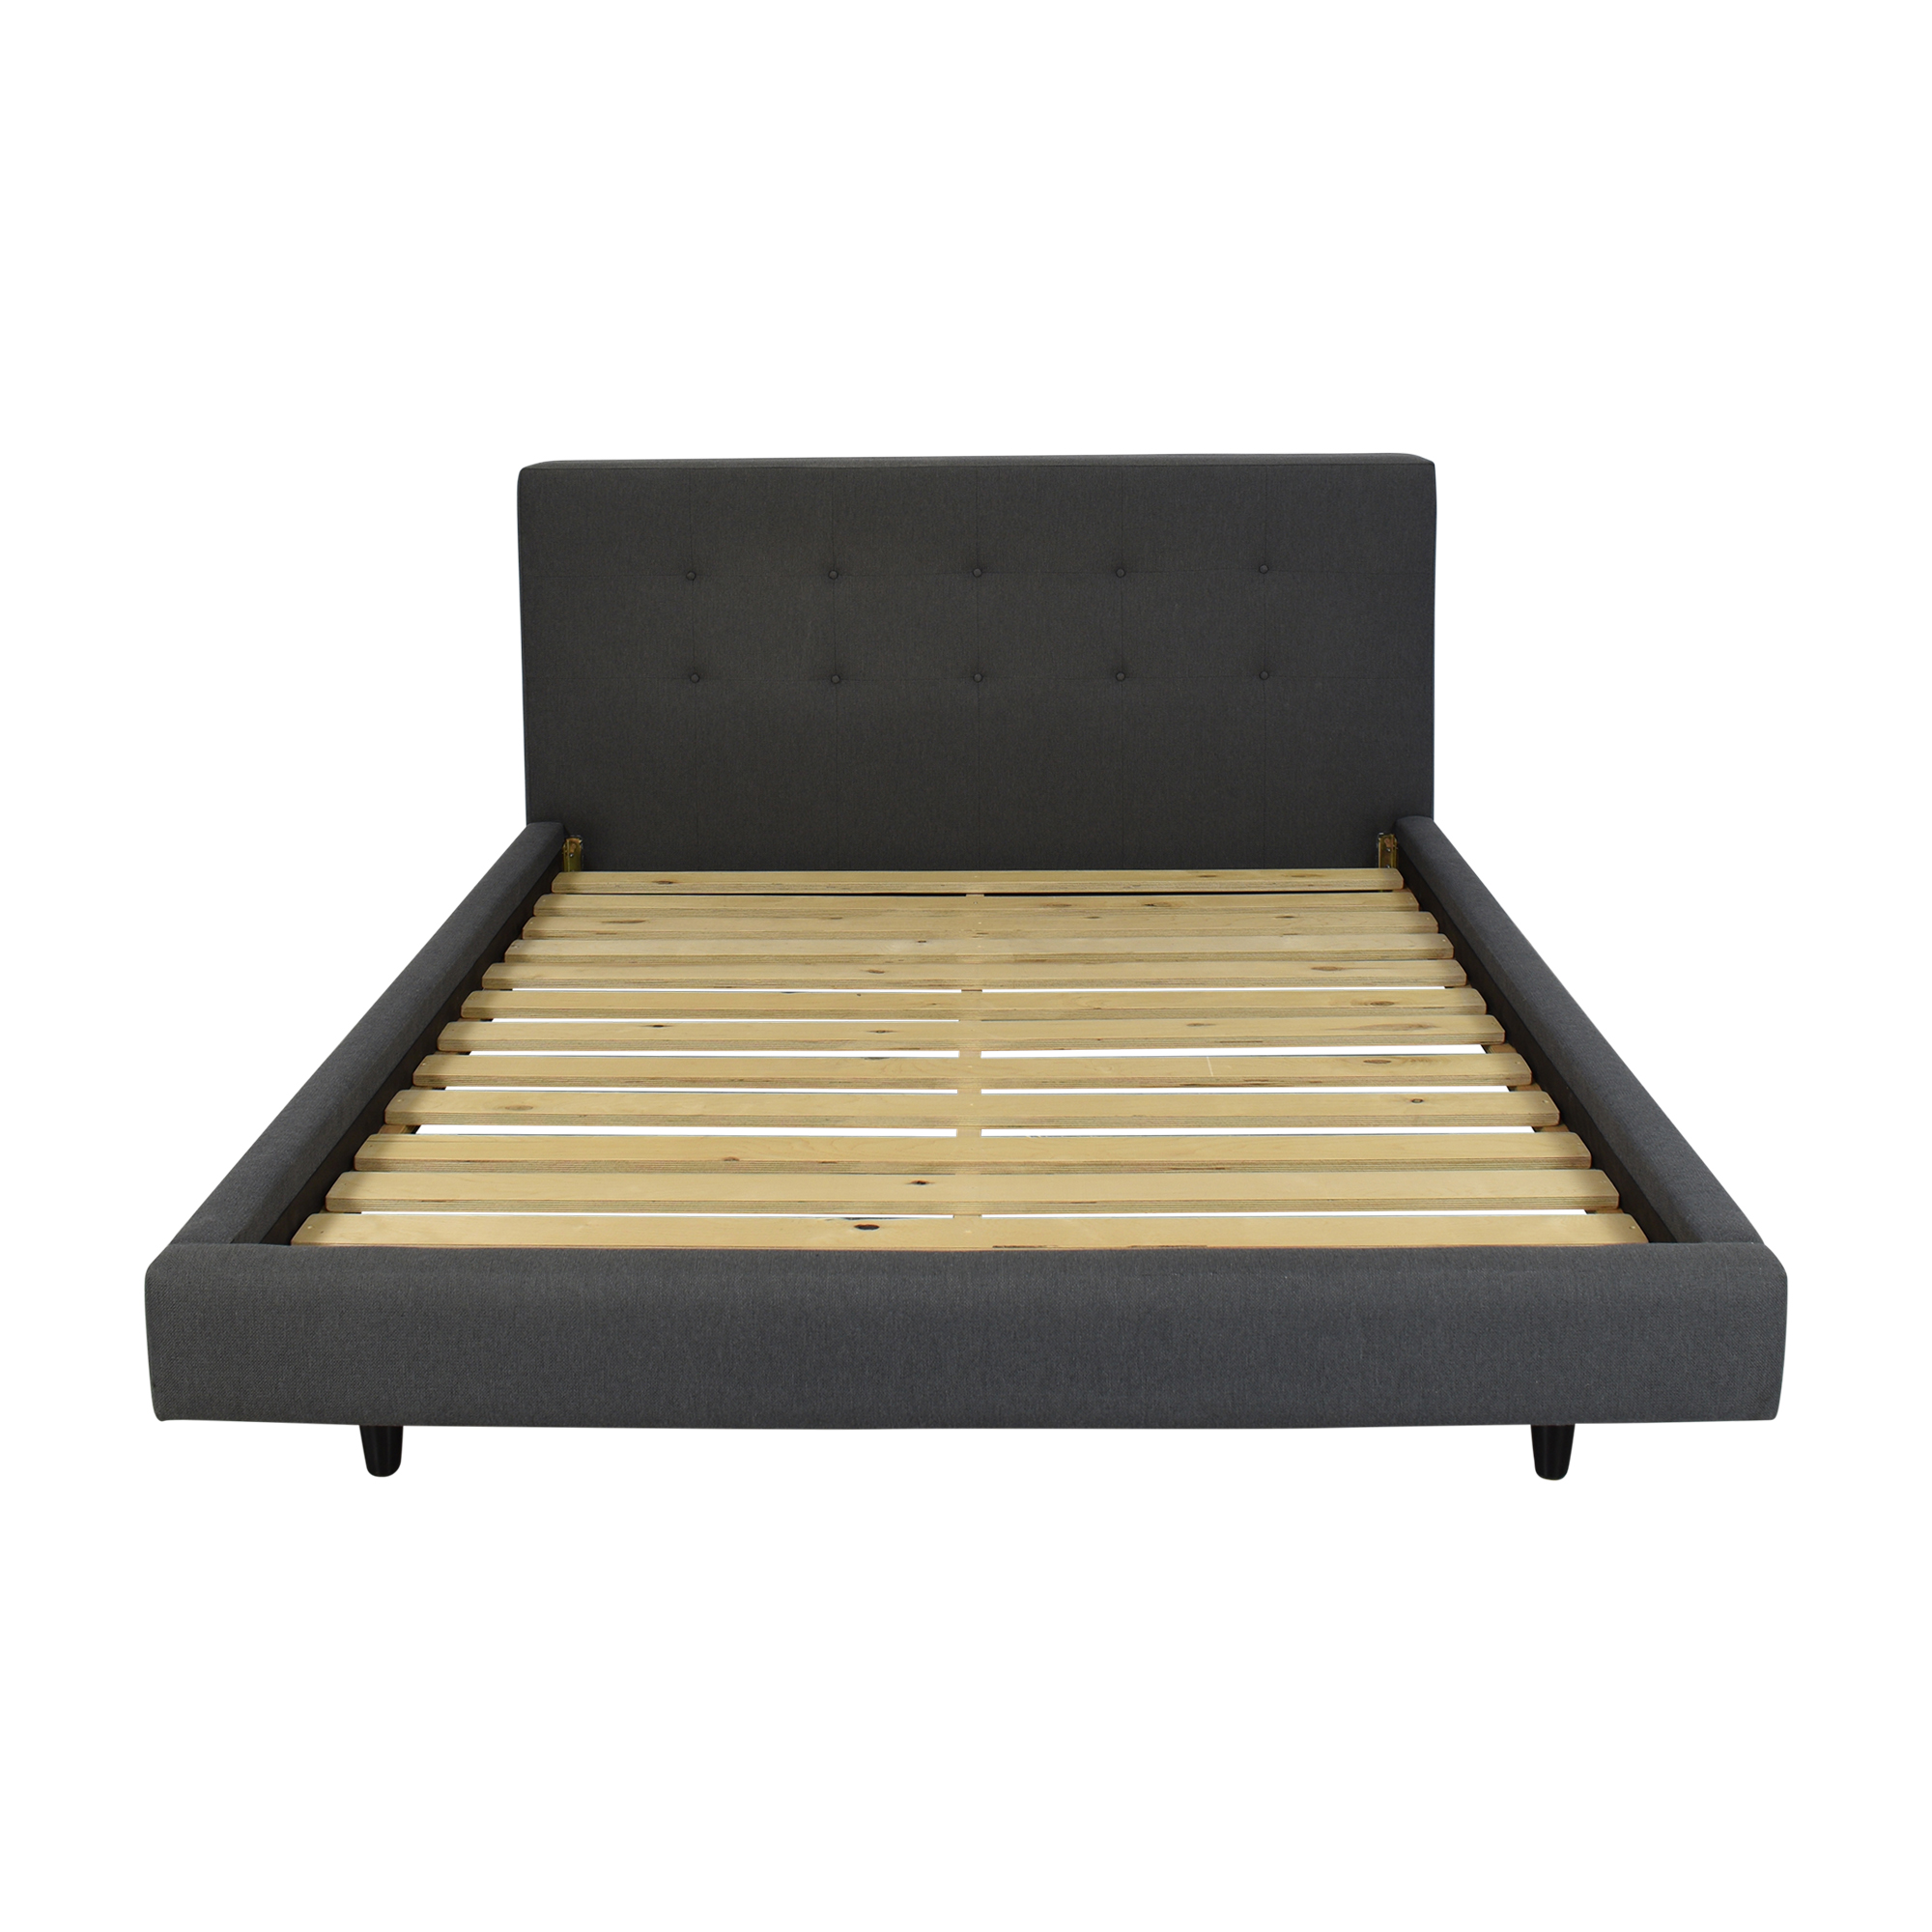 Crate & Barrel Crate & Barrel Tate Queen Bed ct